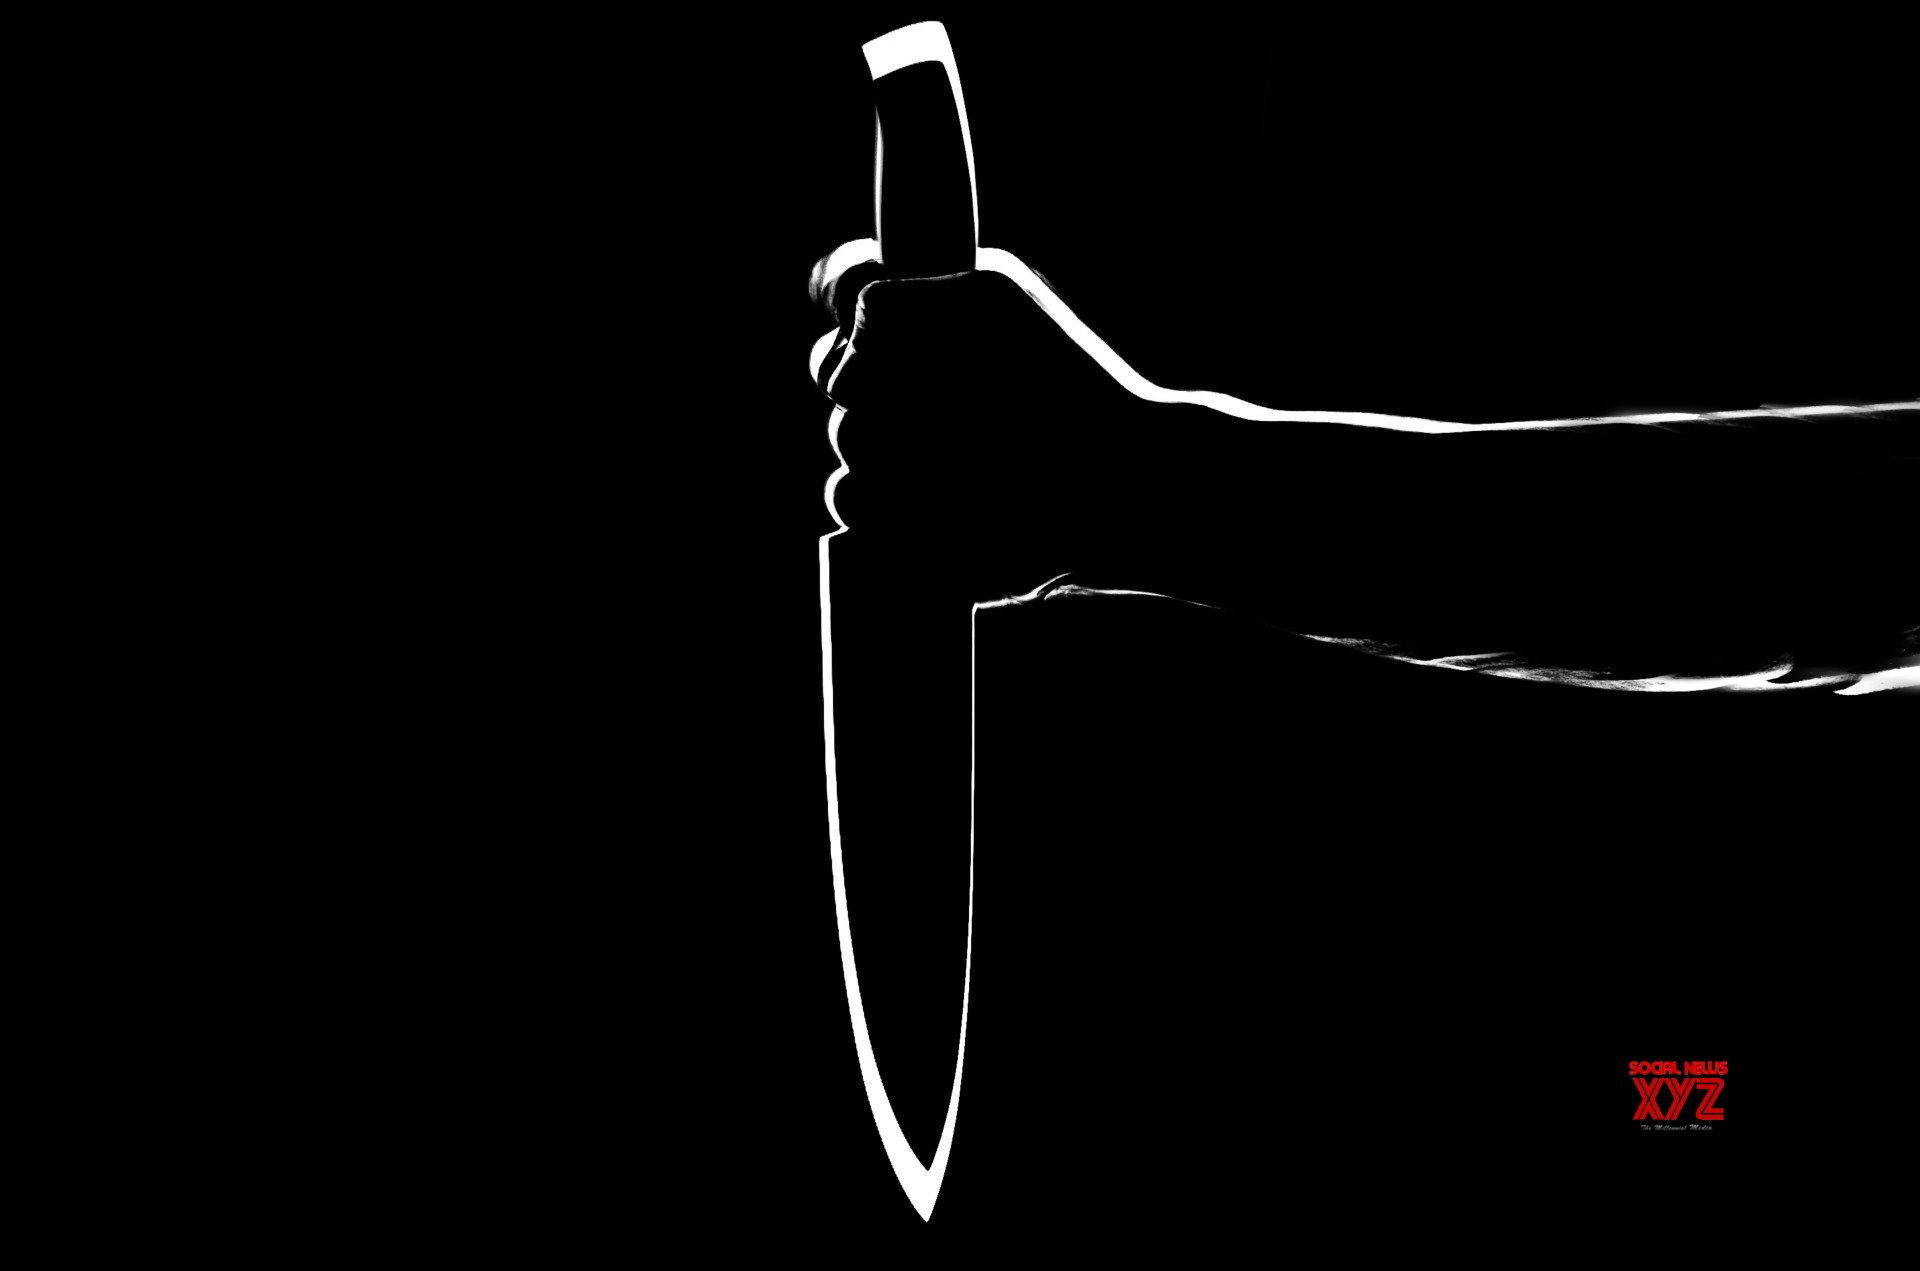 Noida woman allegedly killed for dowry in Ghaziabad